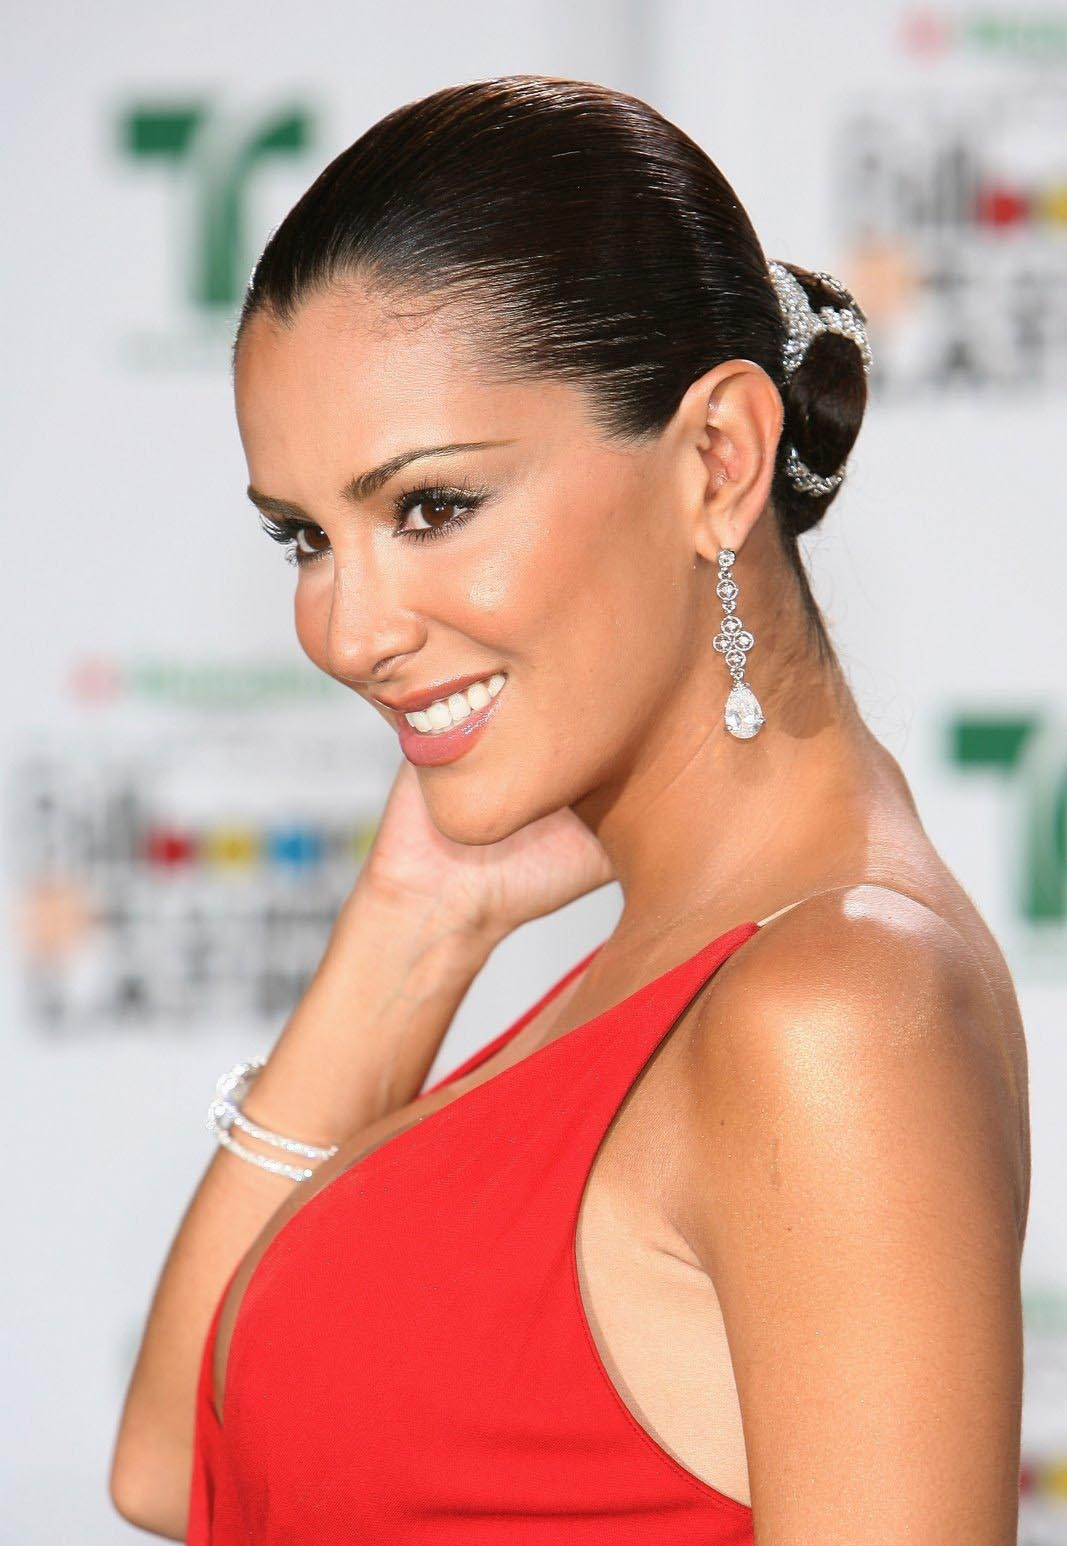 Ninel Conde Very Huge Cleavage Show - Must See  Hot -9820